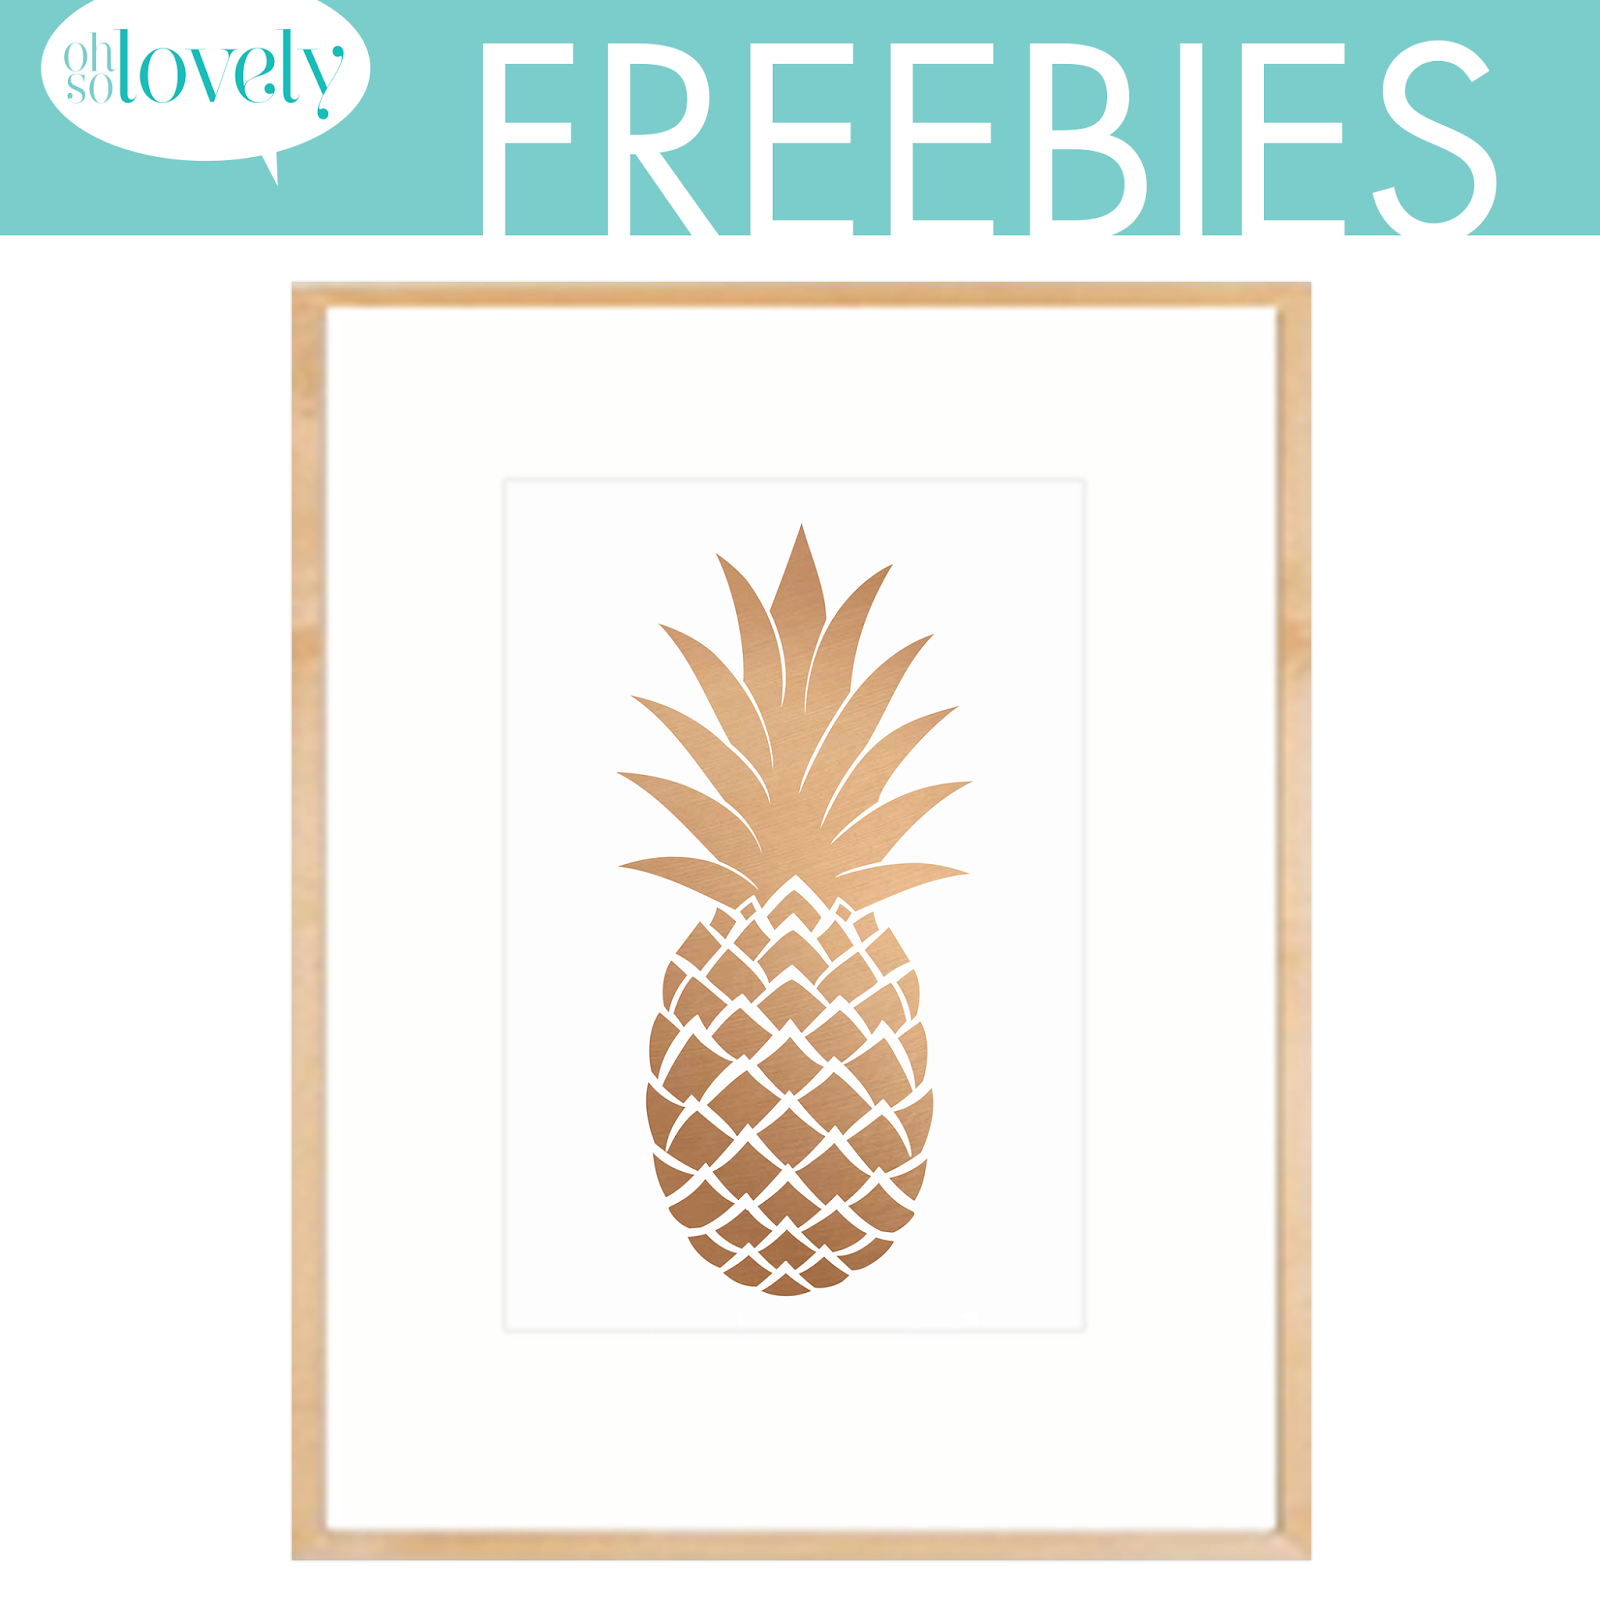 picture about Printable Pineapple named no cost pineapple printables incorporate some entertaining toward your property decor!